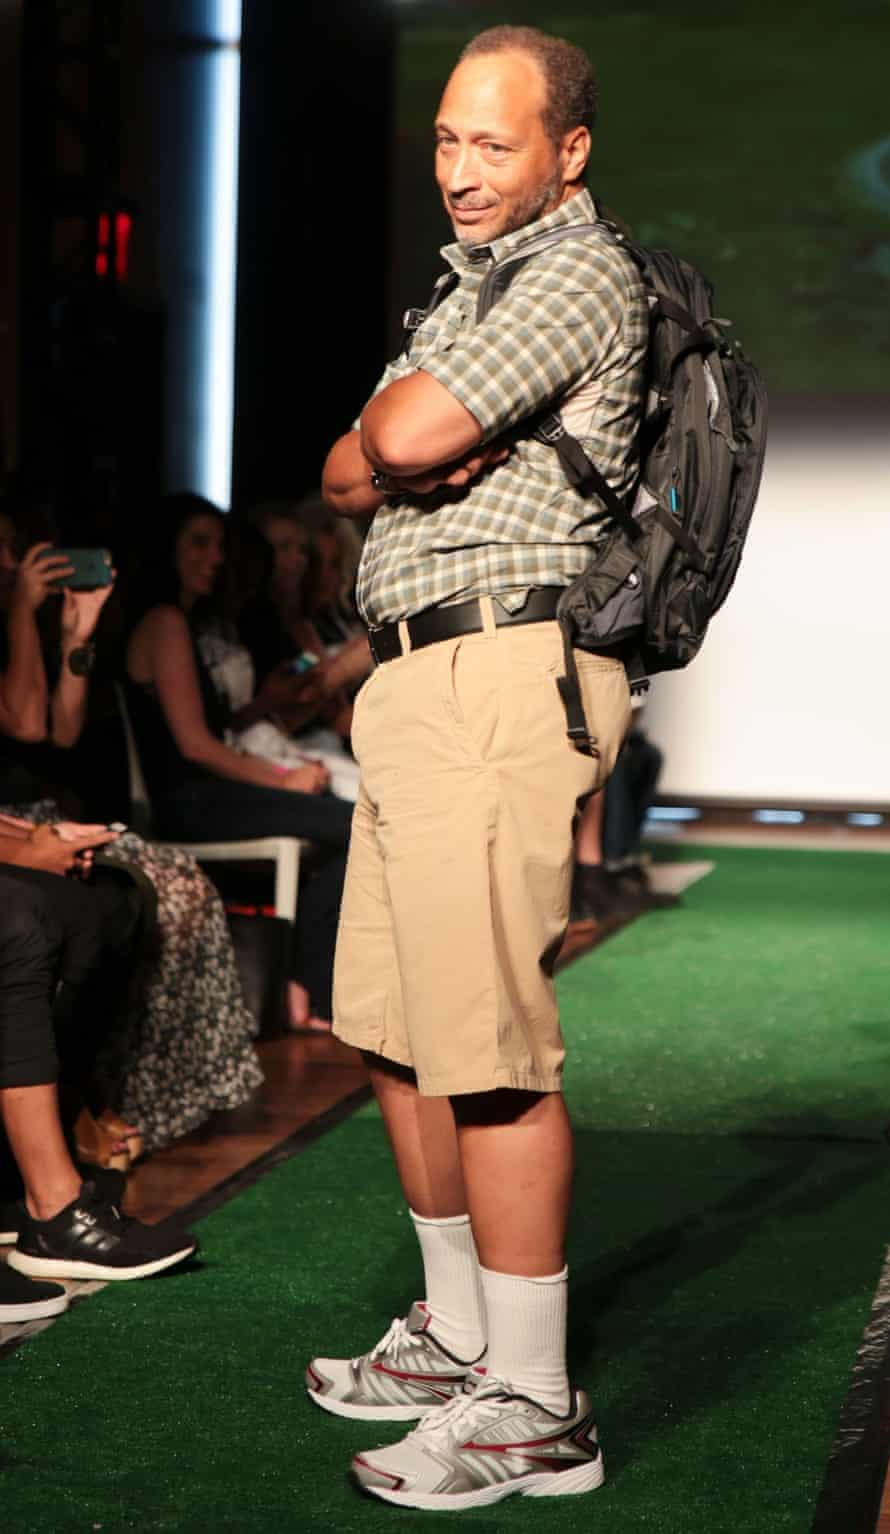 Family guy: the definition of normcore. A model on the catwalk during the Fat Jewish show in New York.